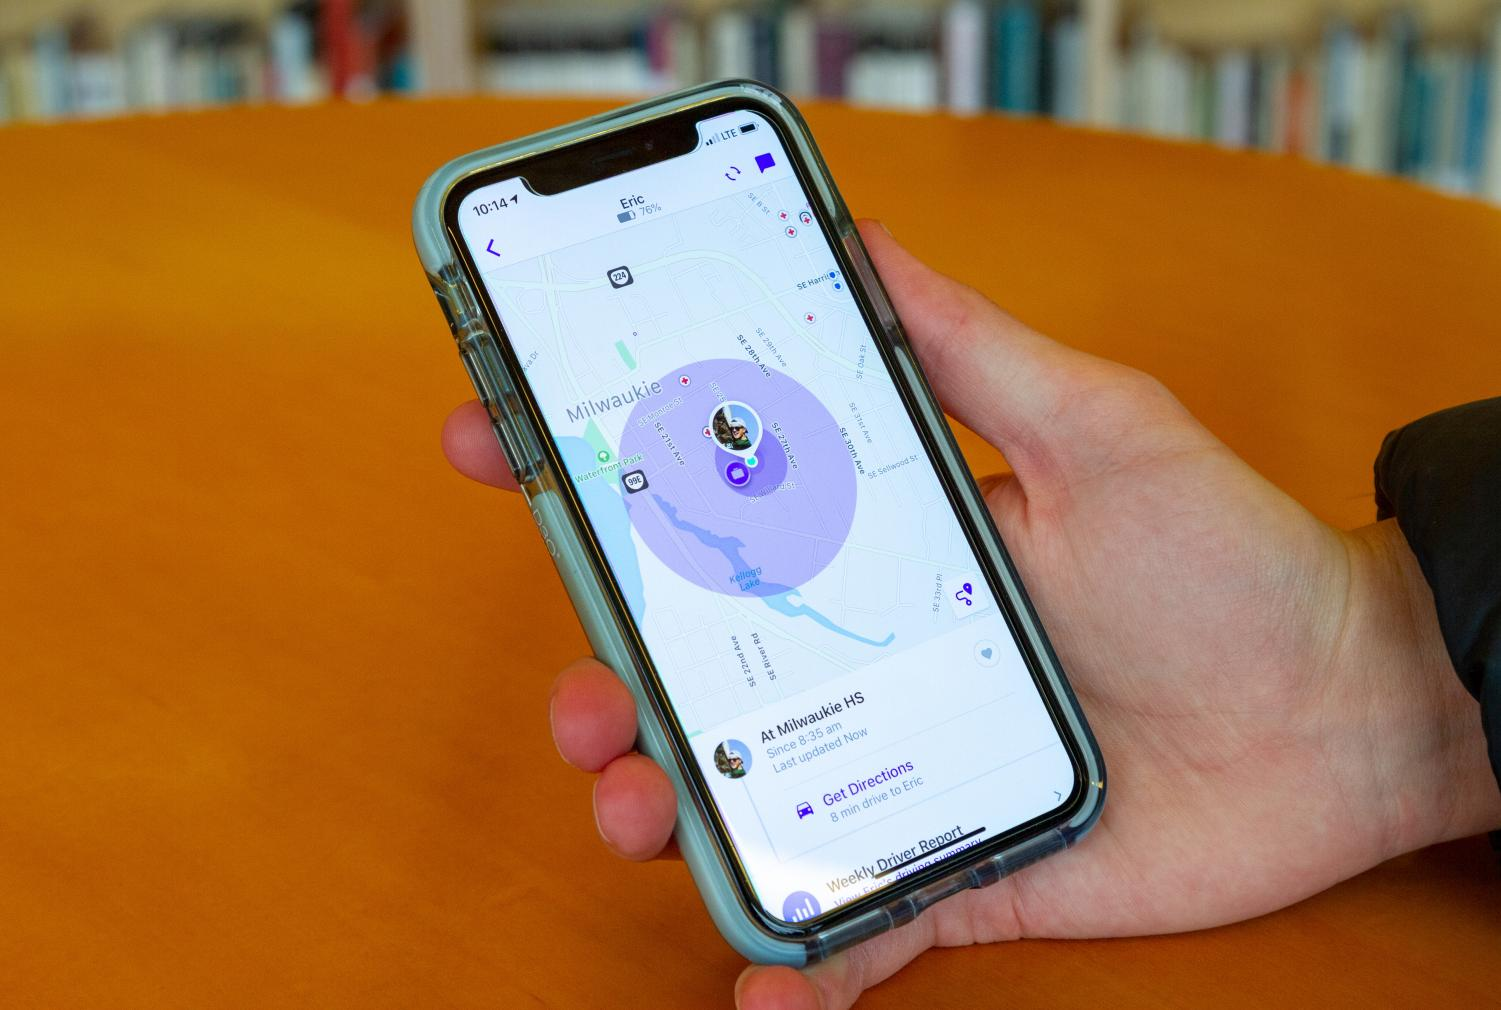 In a survey of 53 La Salle students, 56.6 percent of them reported that they are tracked in some way by their parents, whether it be their location or their website history.